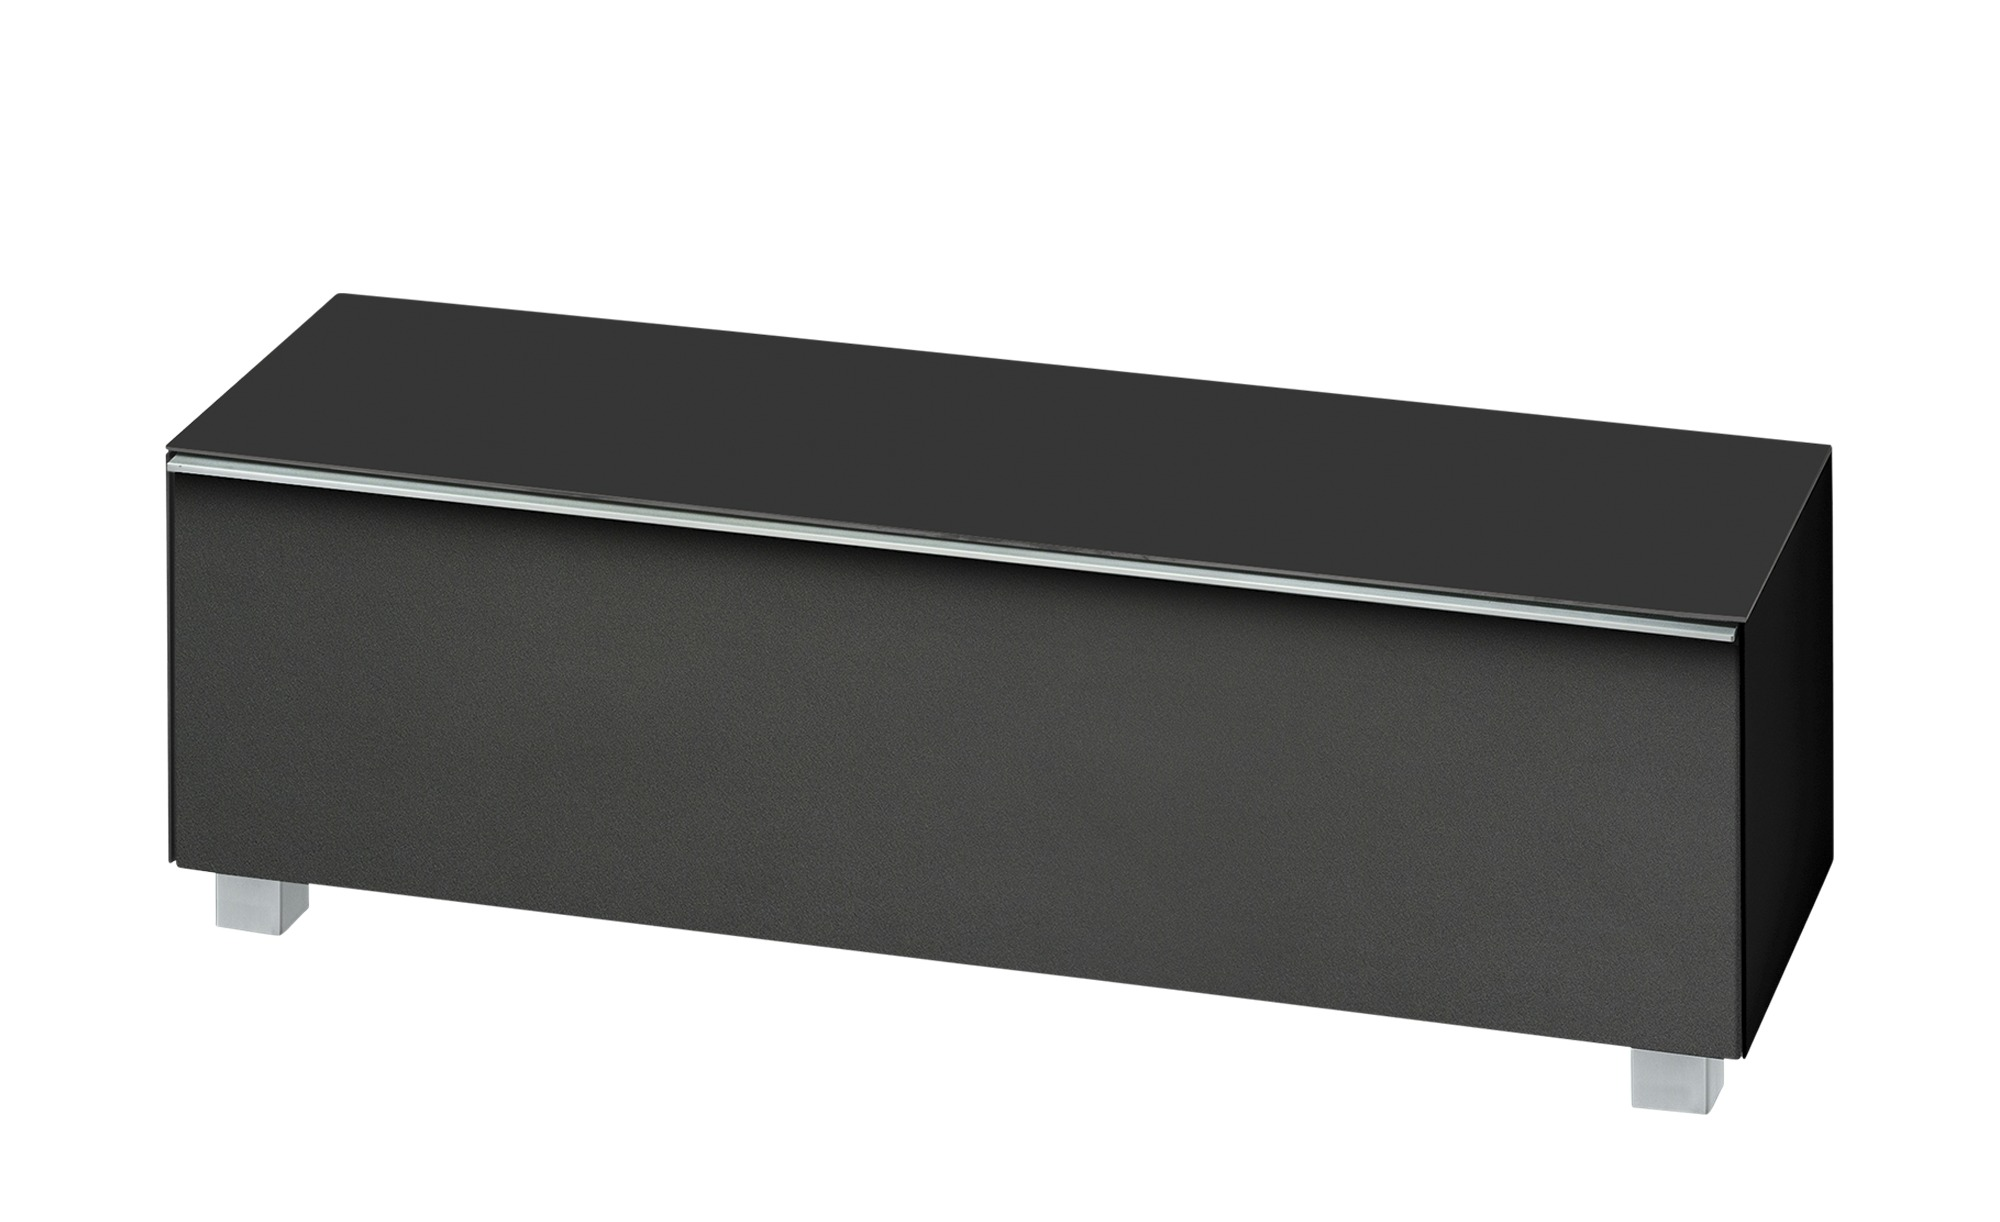 lowboard soundbase s breite 140 cm h he 43 cm schwarz. Black Bedroom Furniture Sets. Home Design Ideas